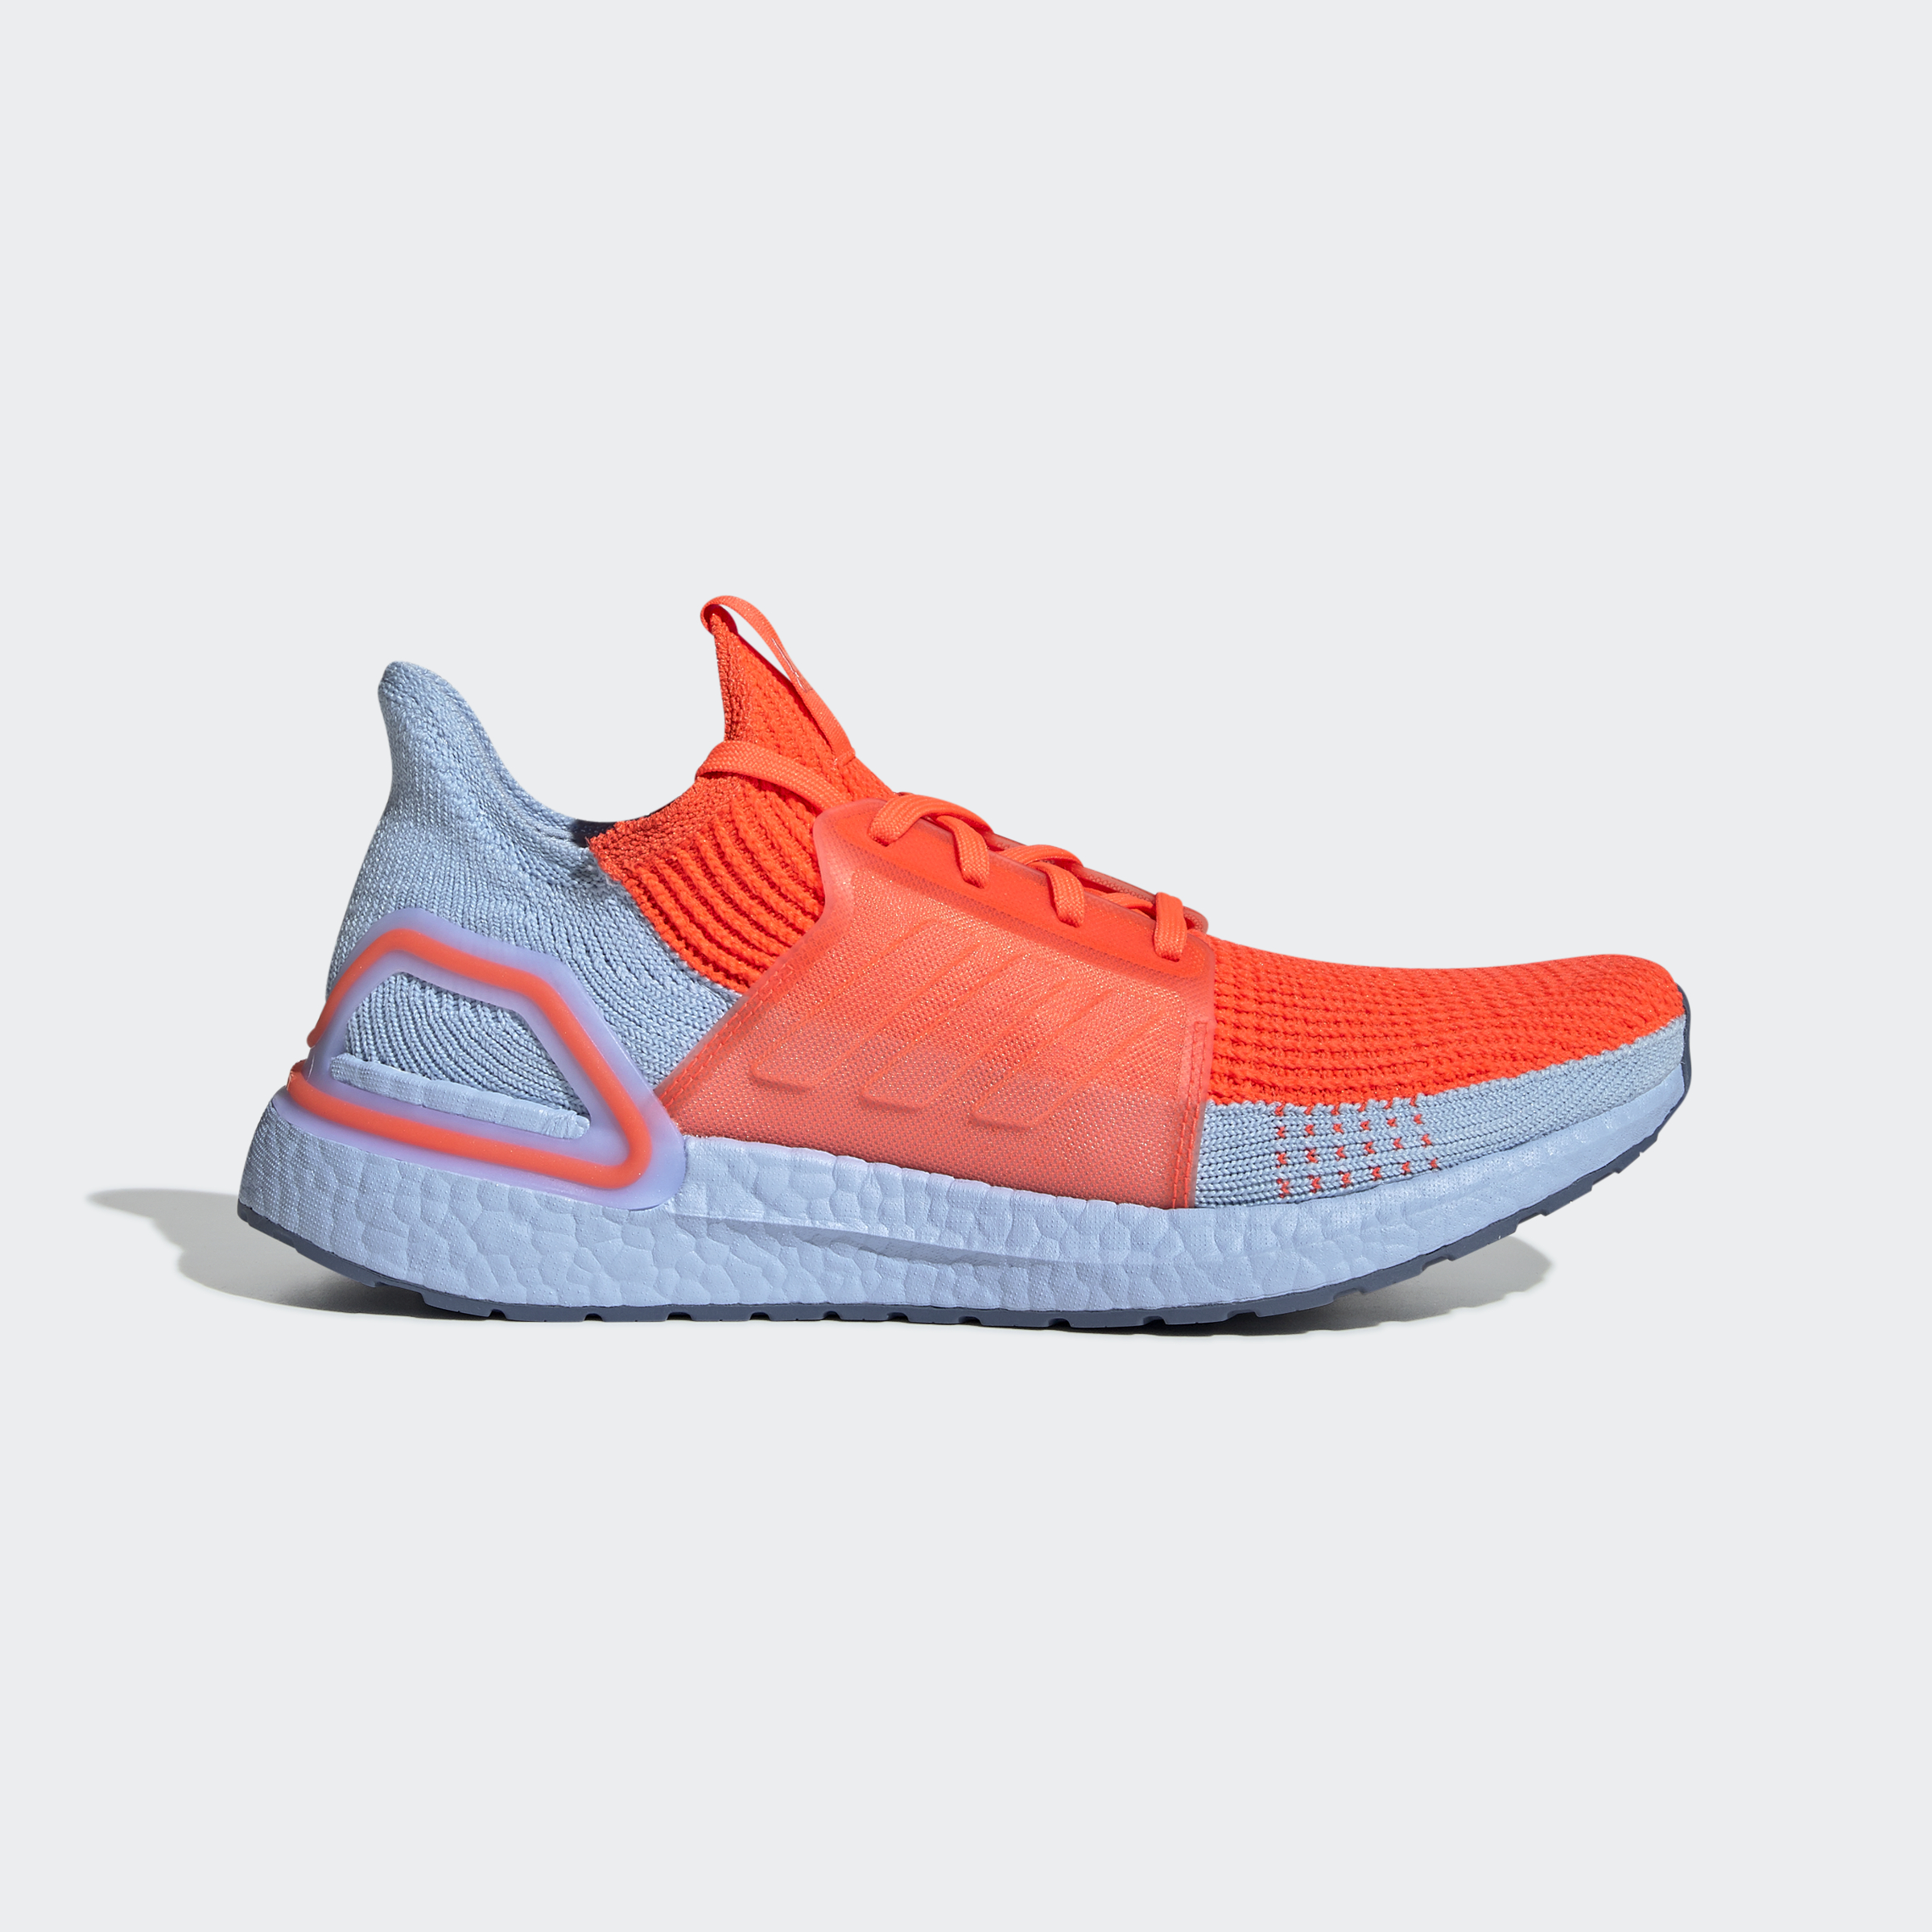 adidas-Ultraboost-19-Shoes-Athletic-amp-Sneakers thumbnail 76